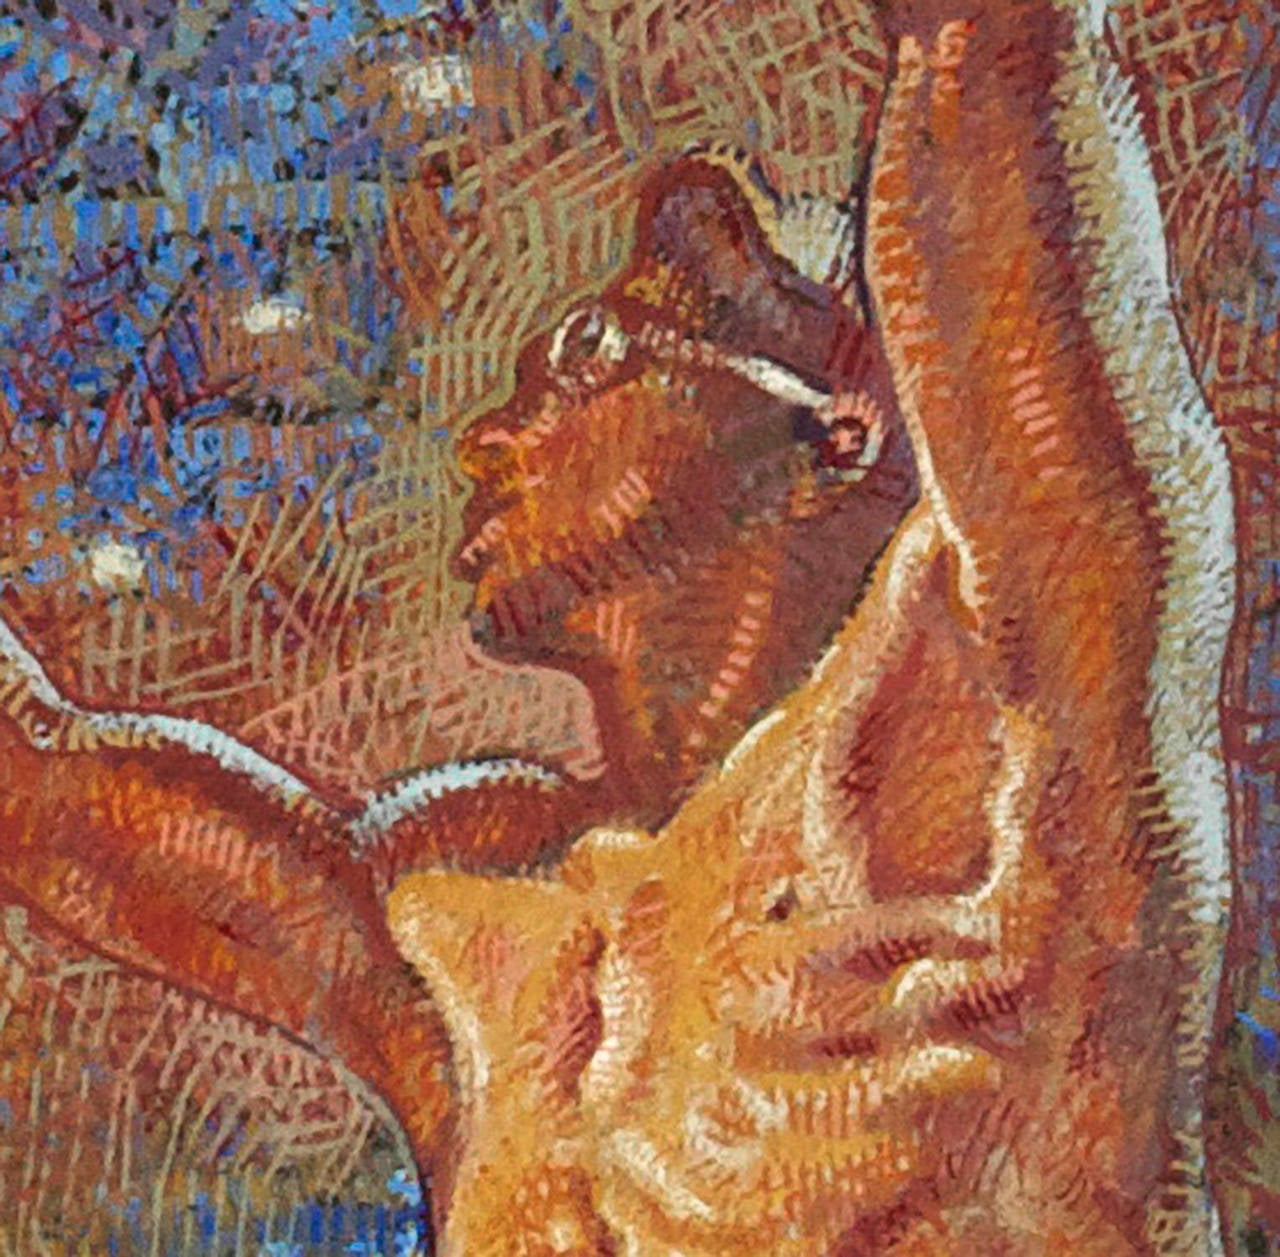 Forging Ahead - Brown Figurative Painting by Mahlon Blaine